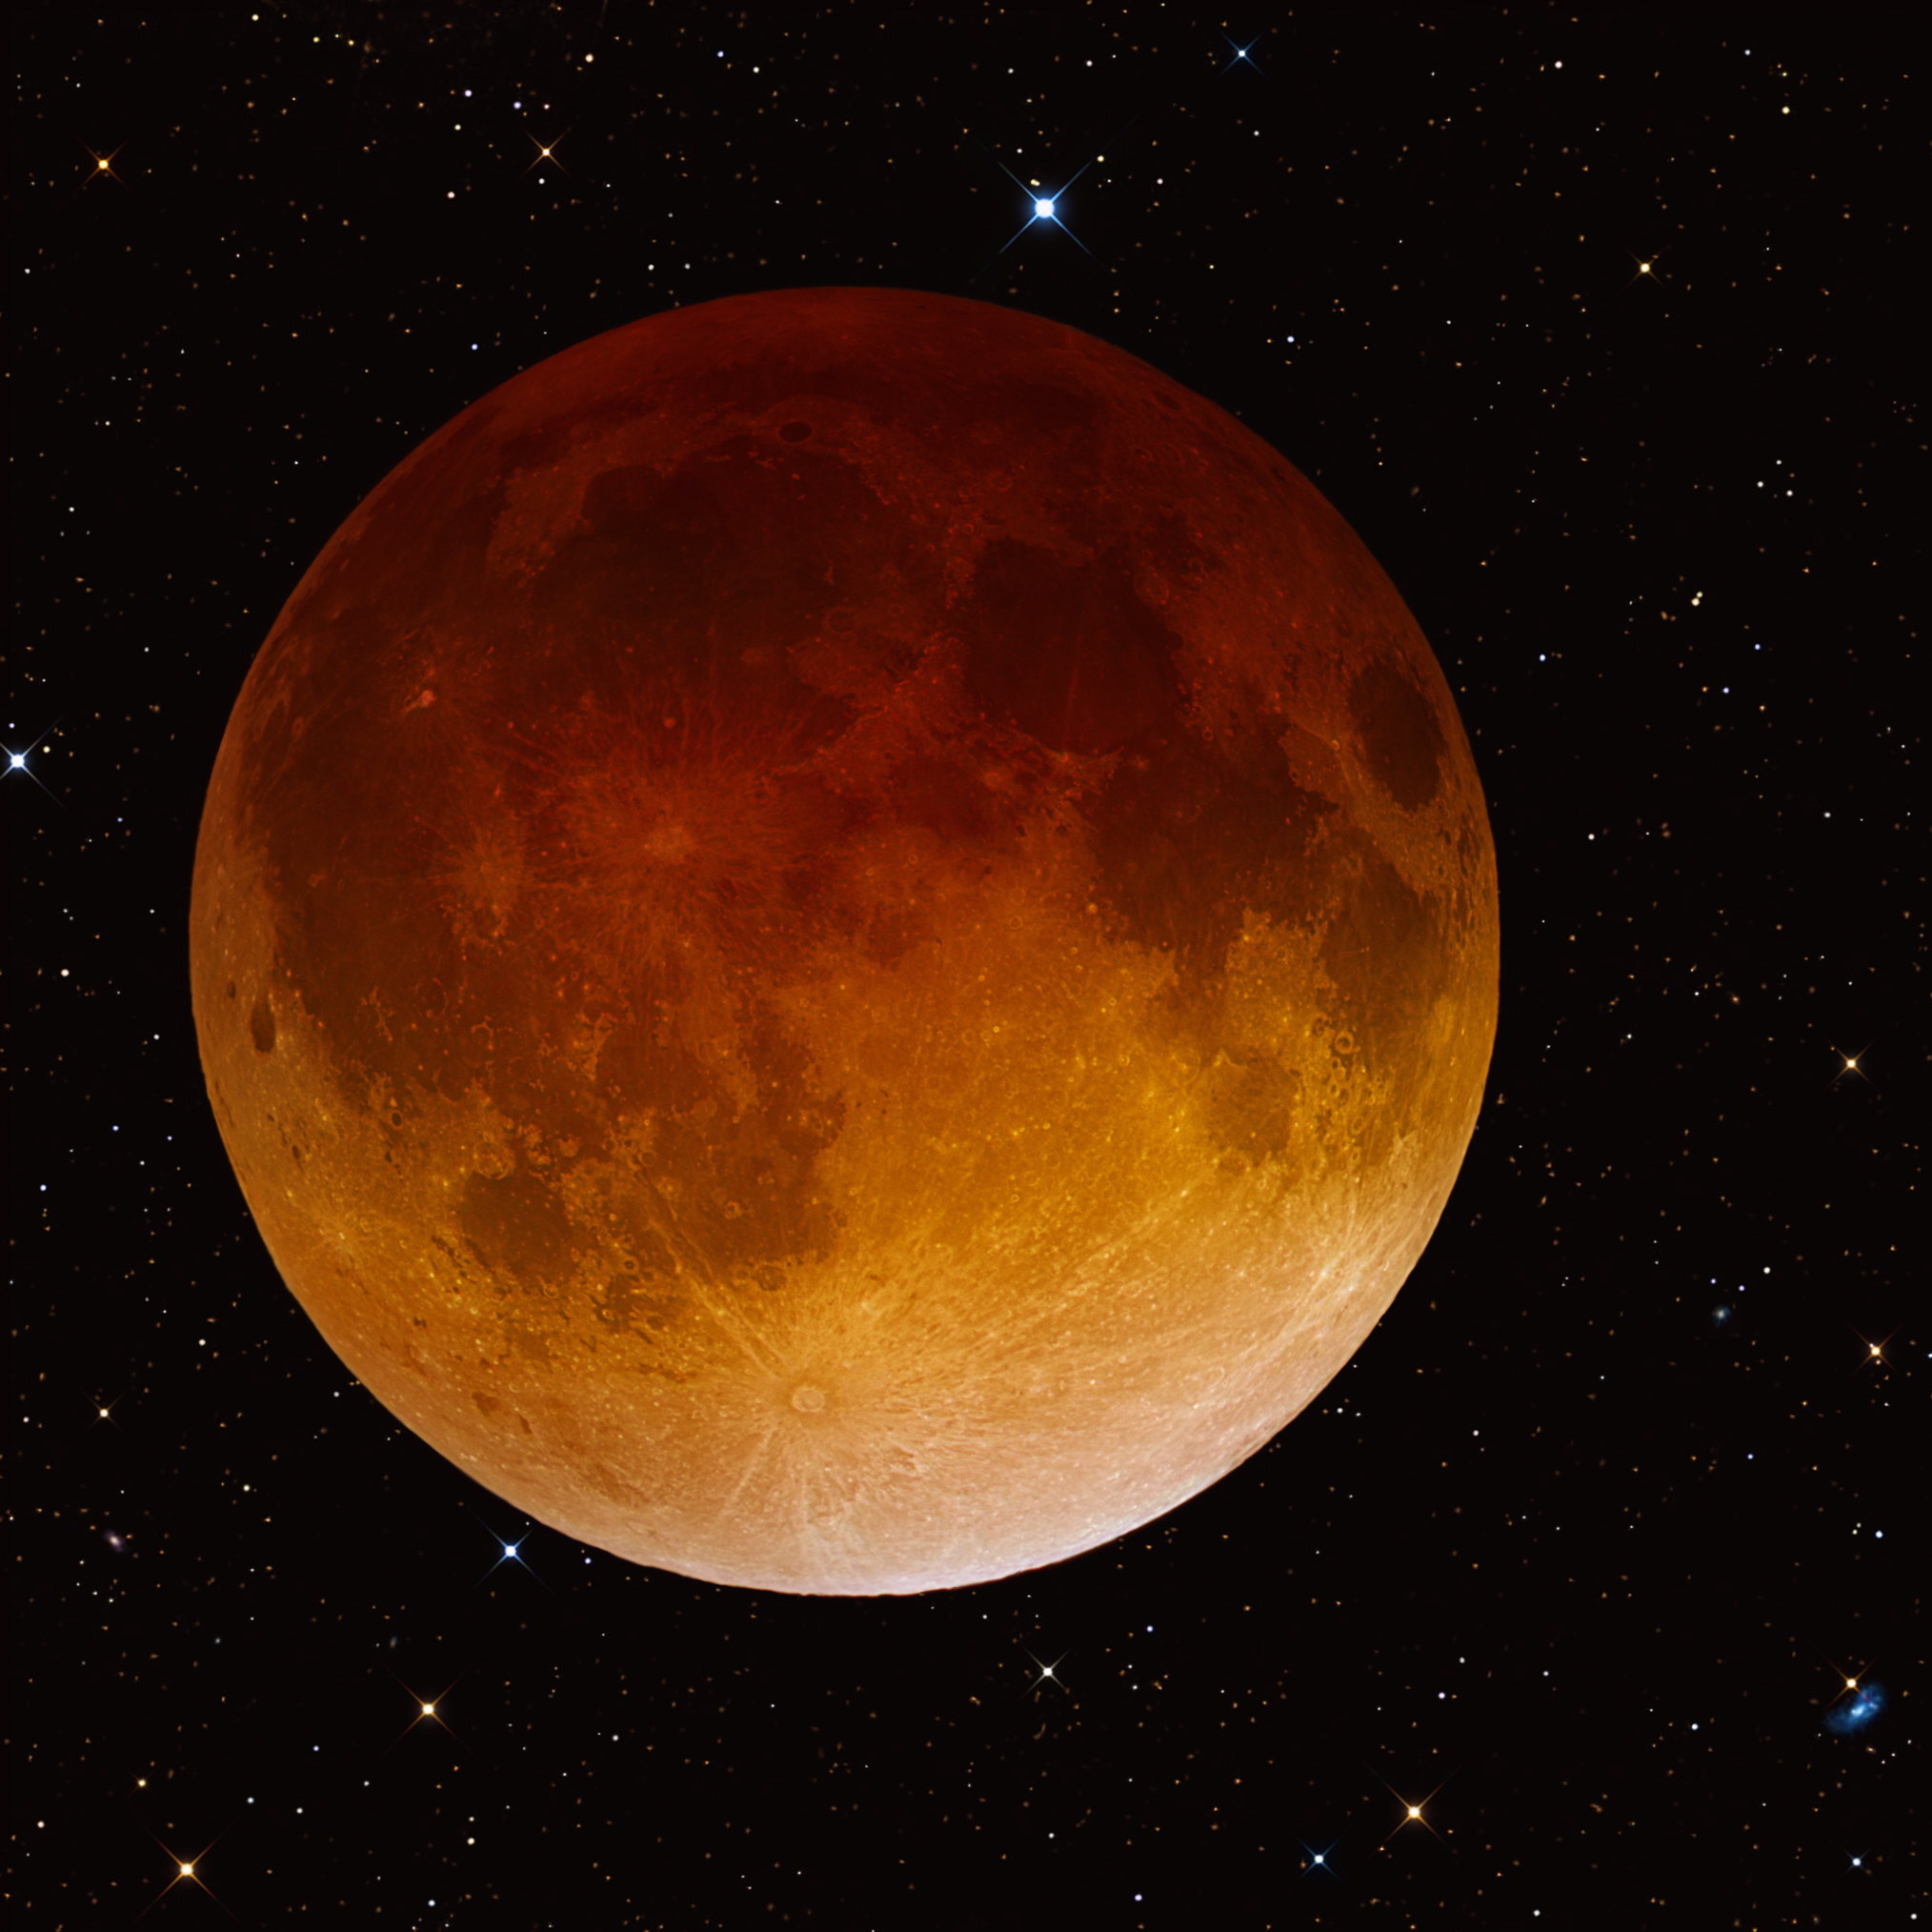 Moon Chart Calendar: April 2014 lunar eclipse - Wikipedia,Chart